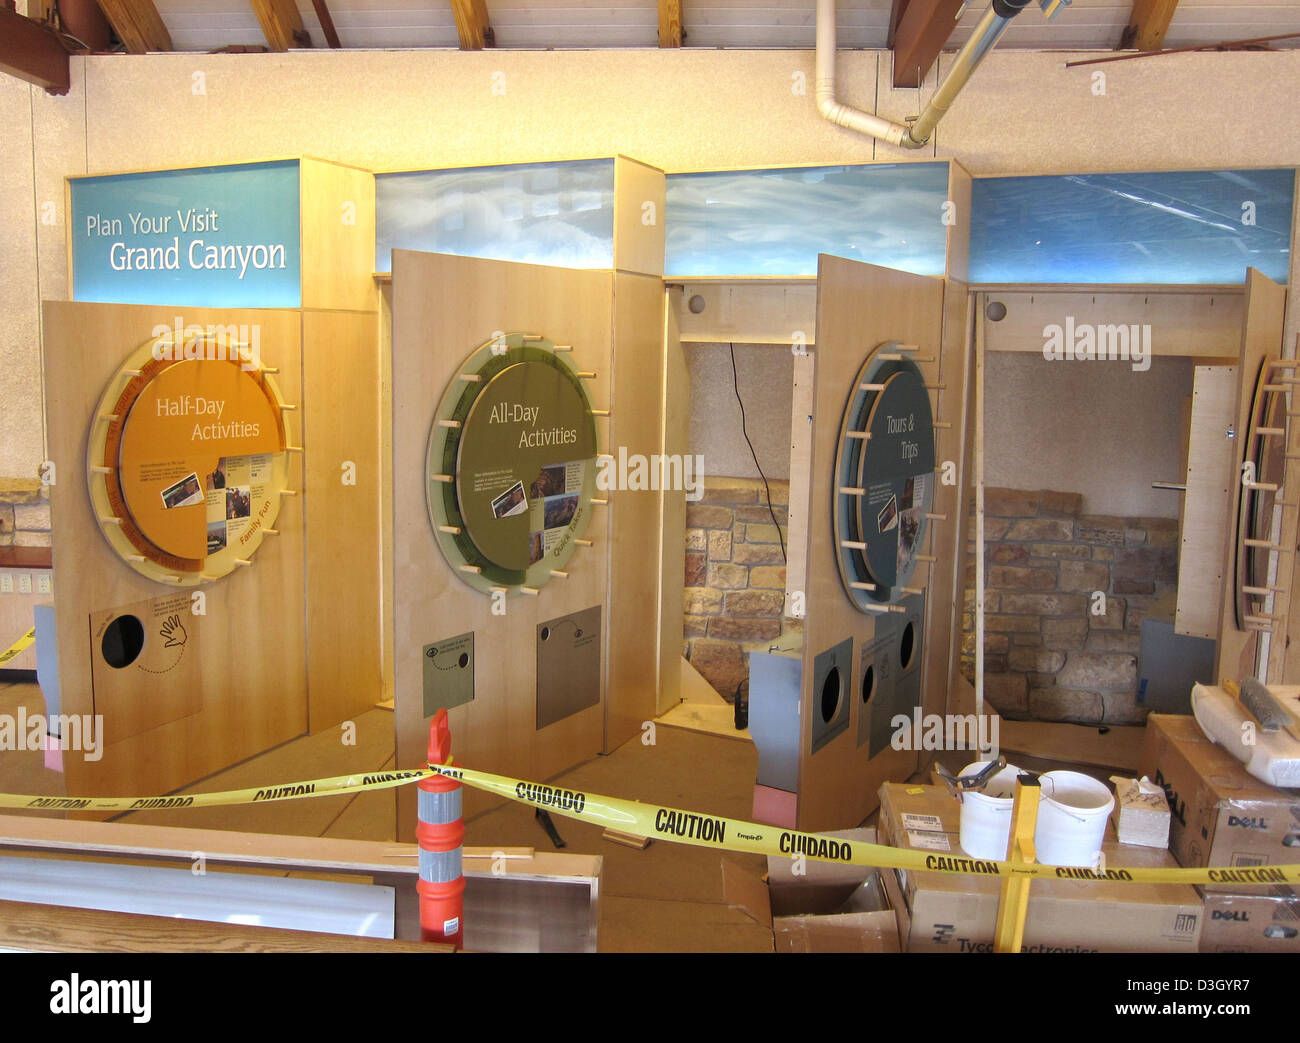 Grand Canyon Nat Park: Visitor Center Exhibit Installation 2469 - Stock Image